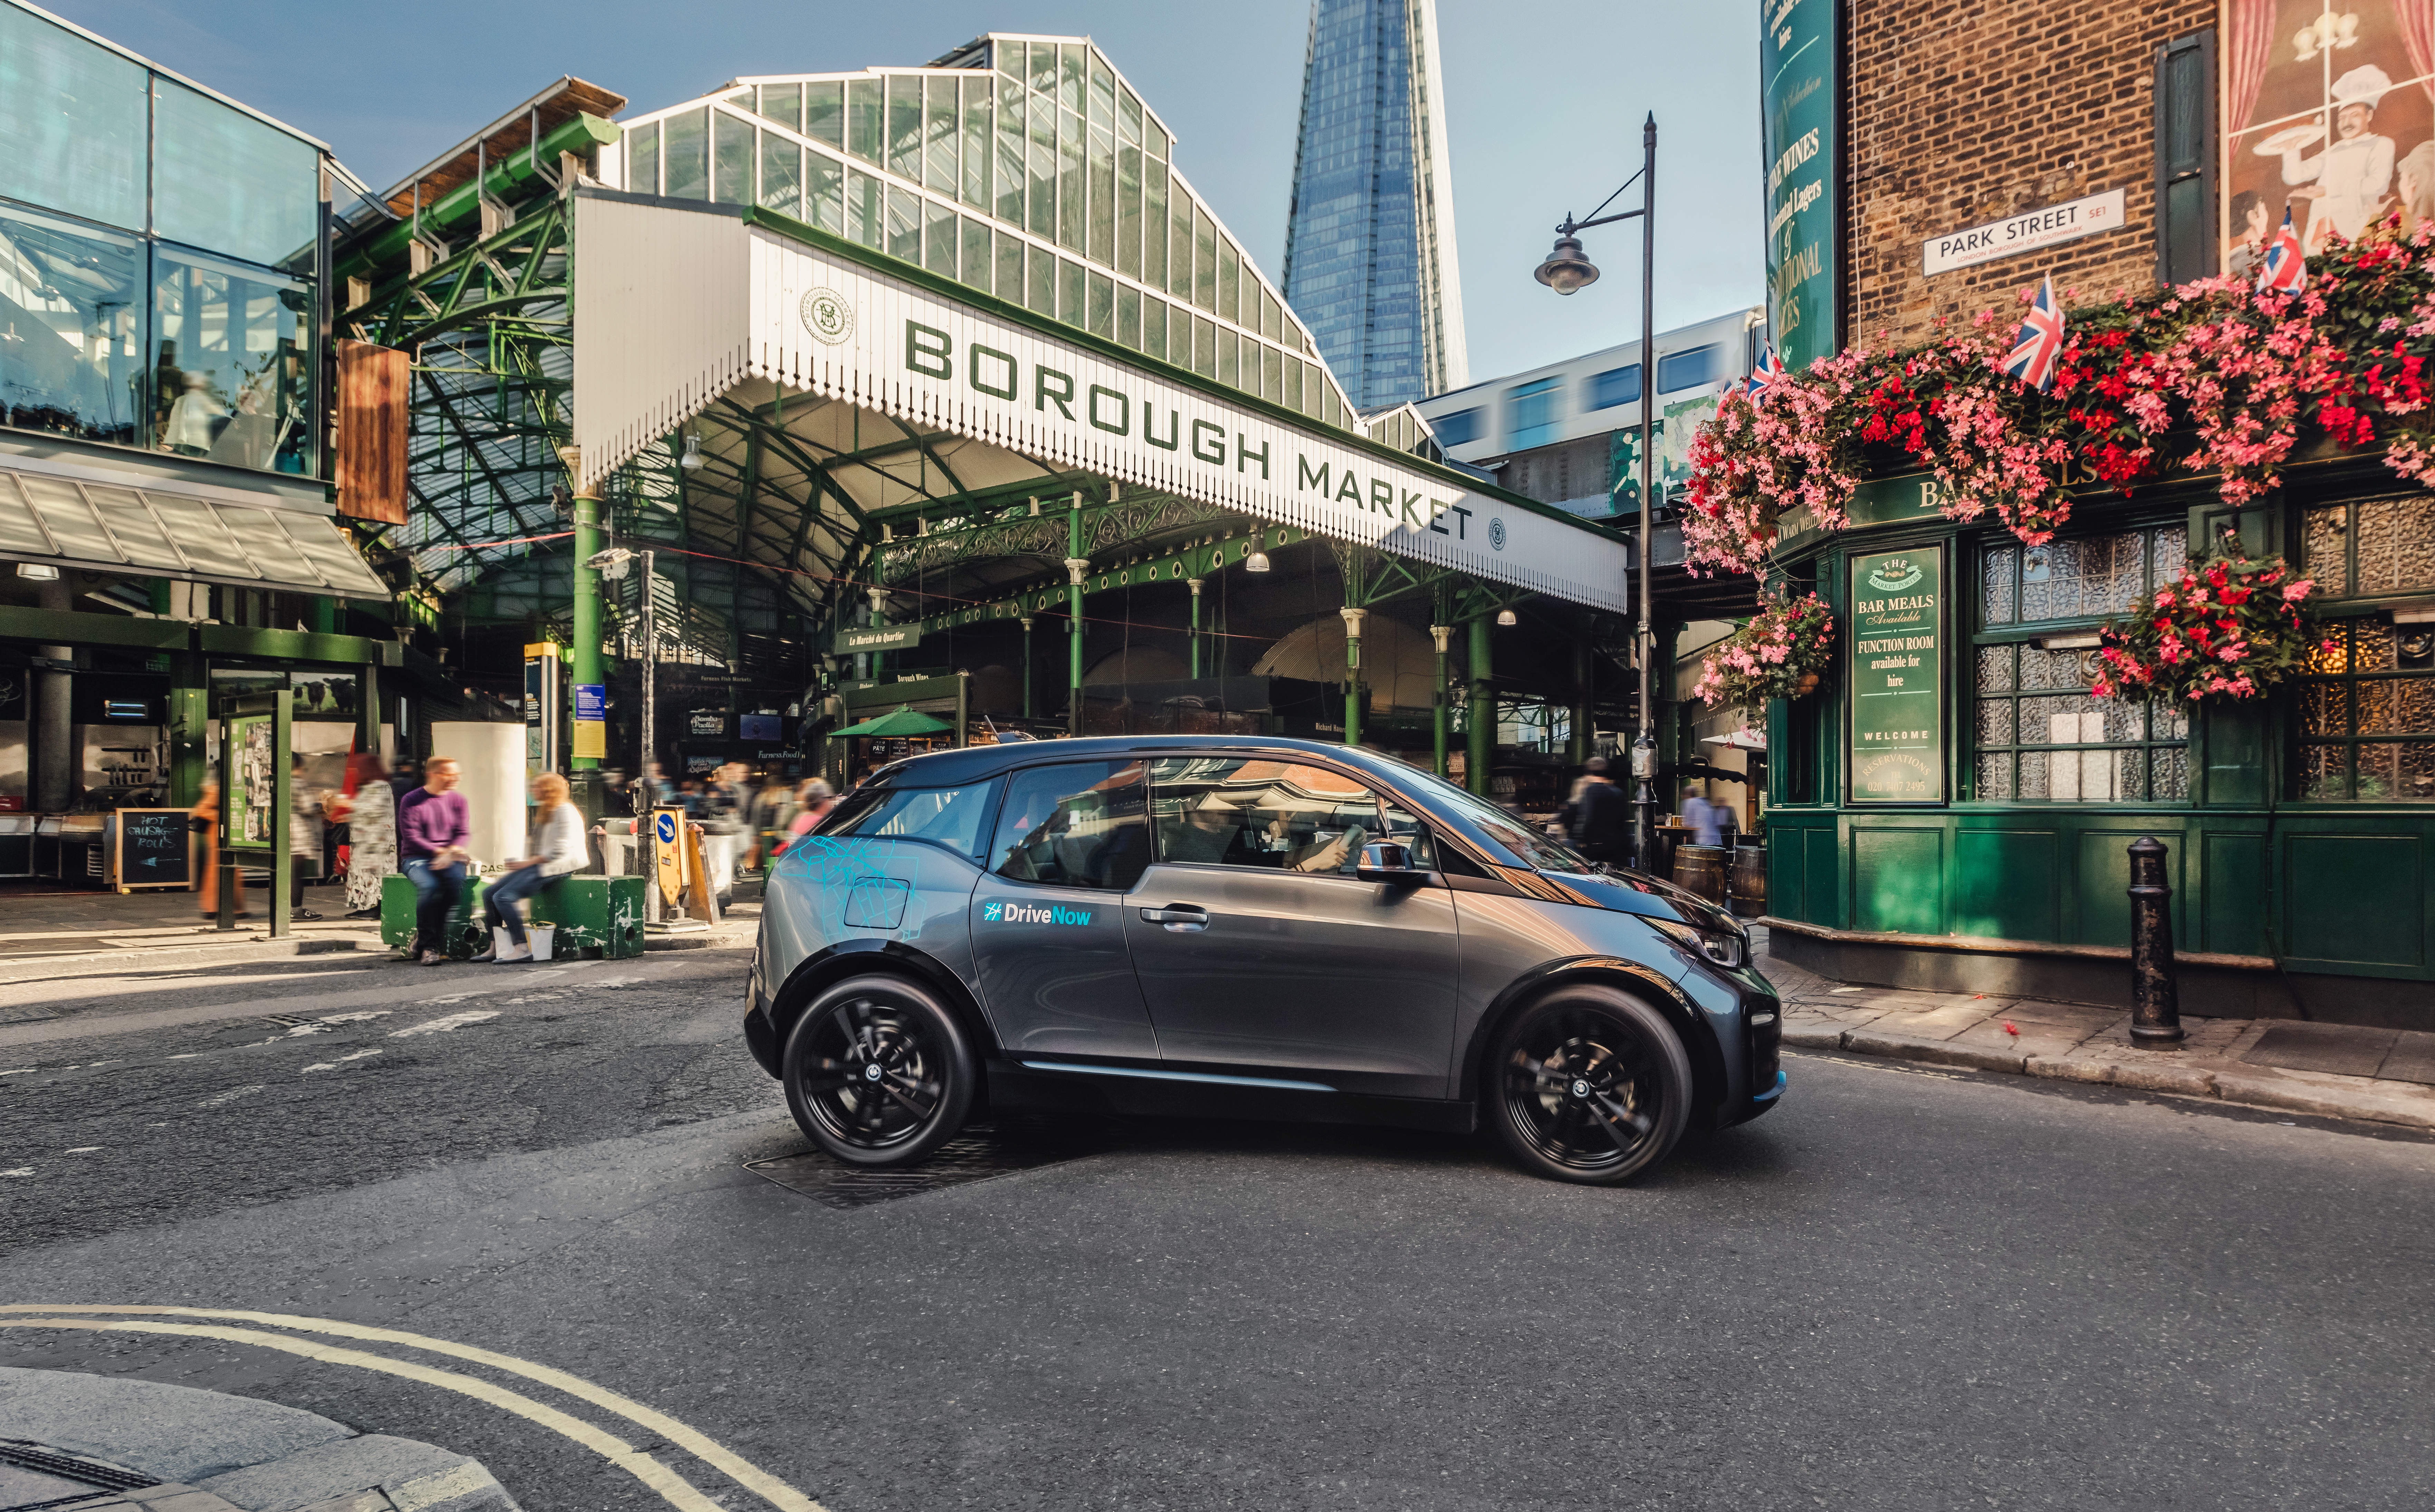 BMW's DriveNow expands in London ahead of Daimler merger